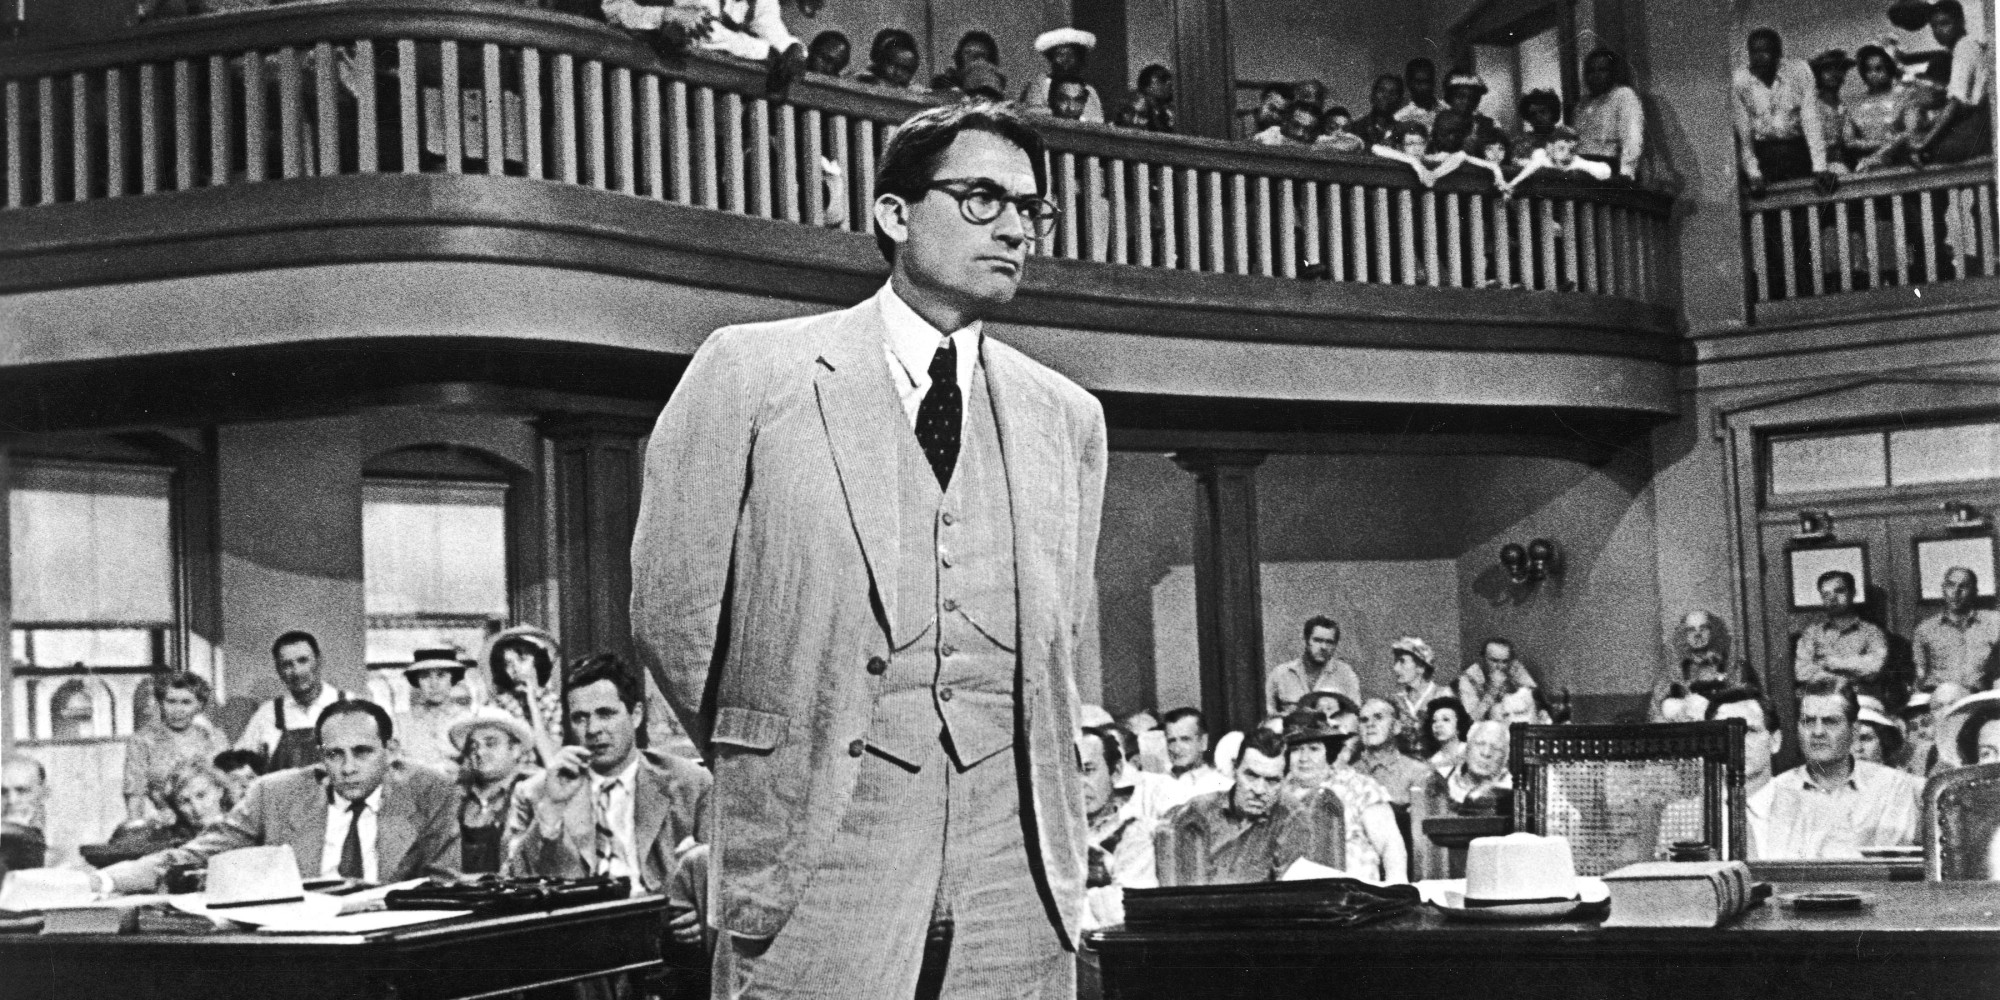 Gregory Peck's redoubtable Atticus Finch commands the courtroom, setting the bar for lawyerly dress.